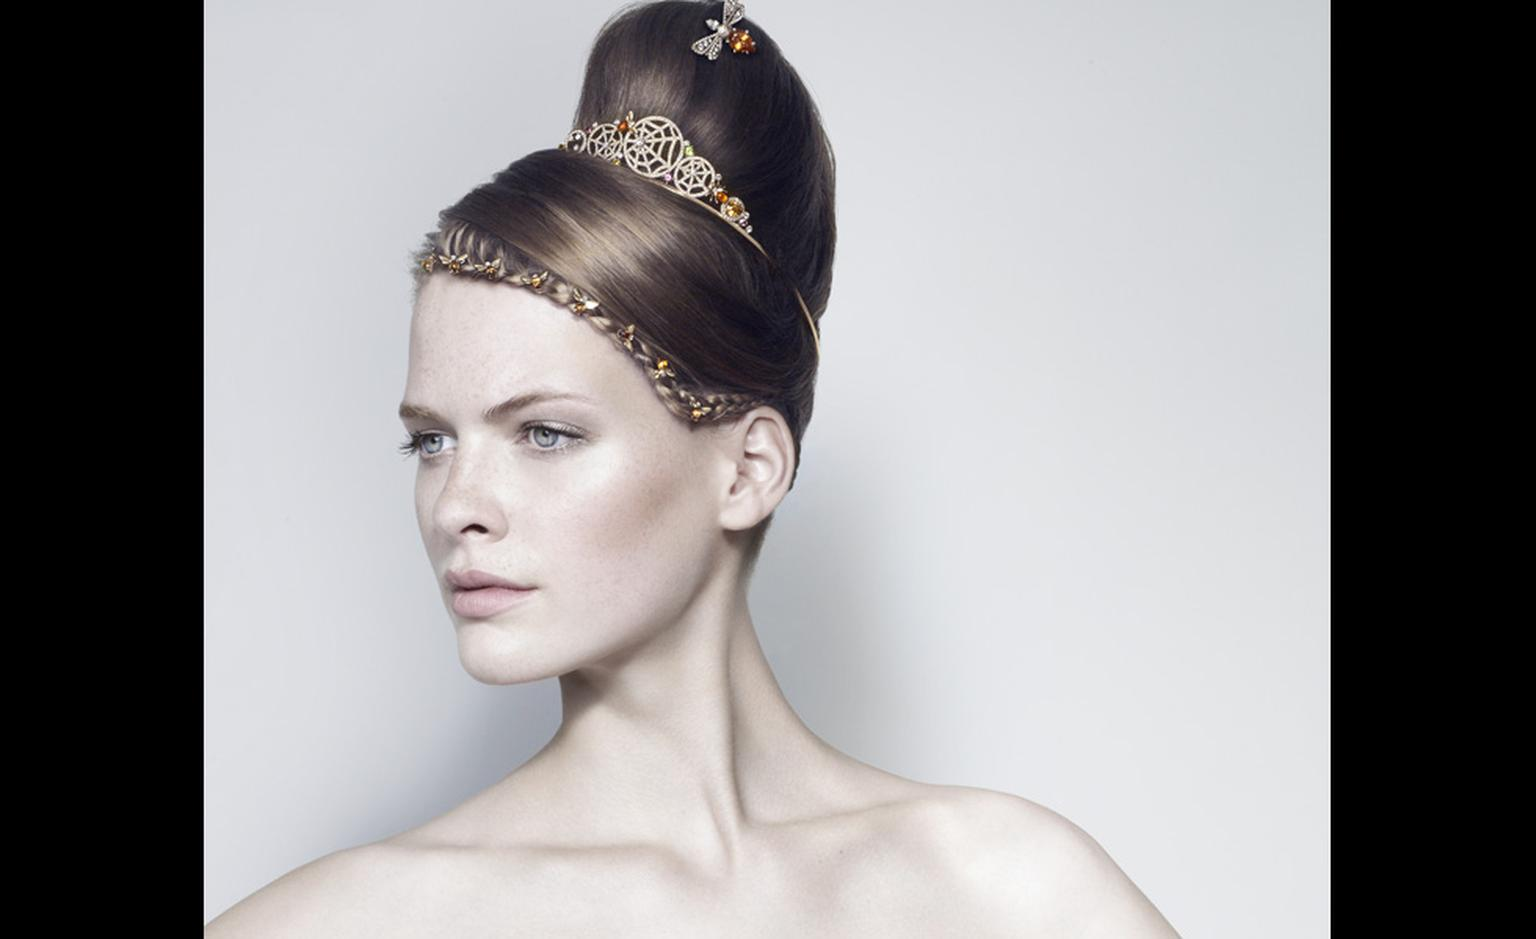 Chaumet's Attrape-Moi tiara features honey-hued bees